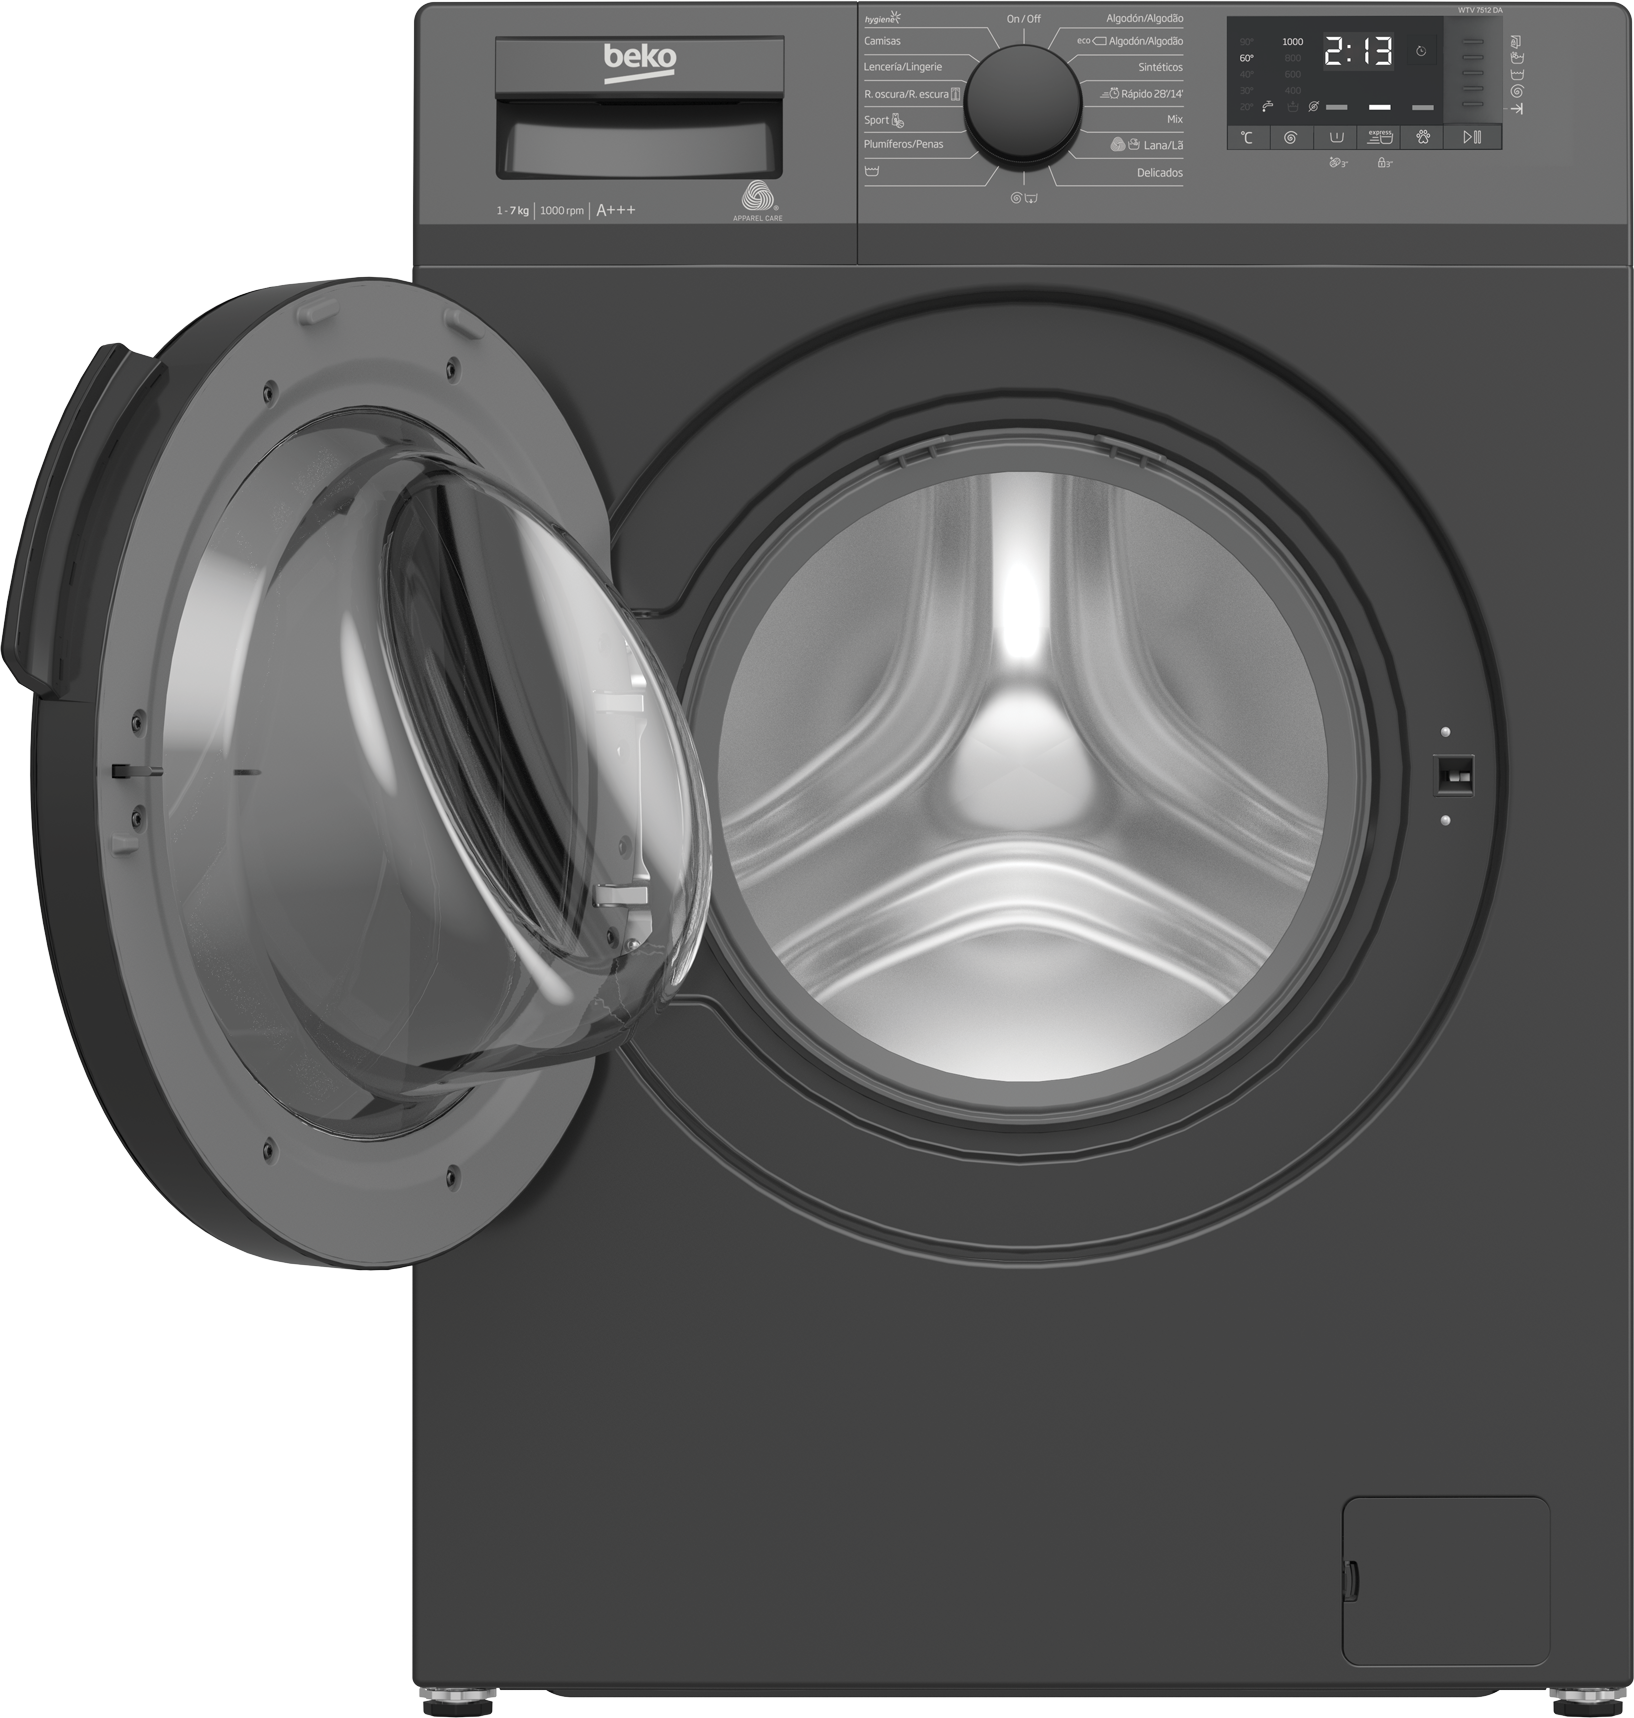 Freestanding Washing Machine (7 kg, 1000 rpm) WTV 7512 DA